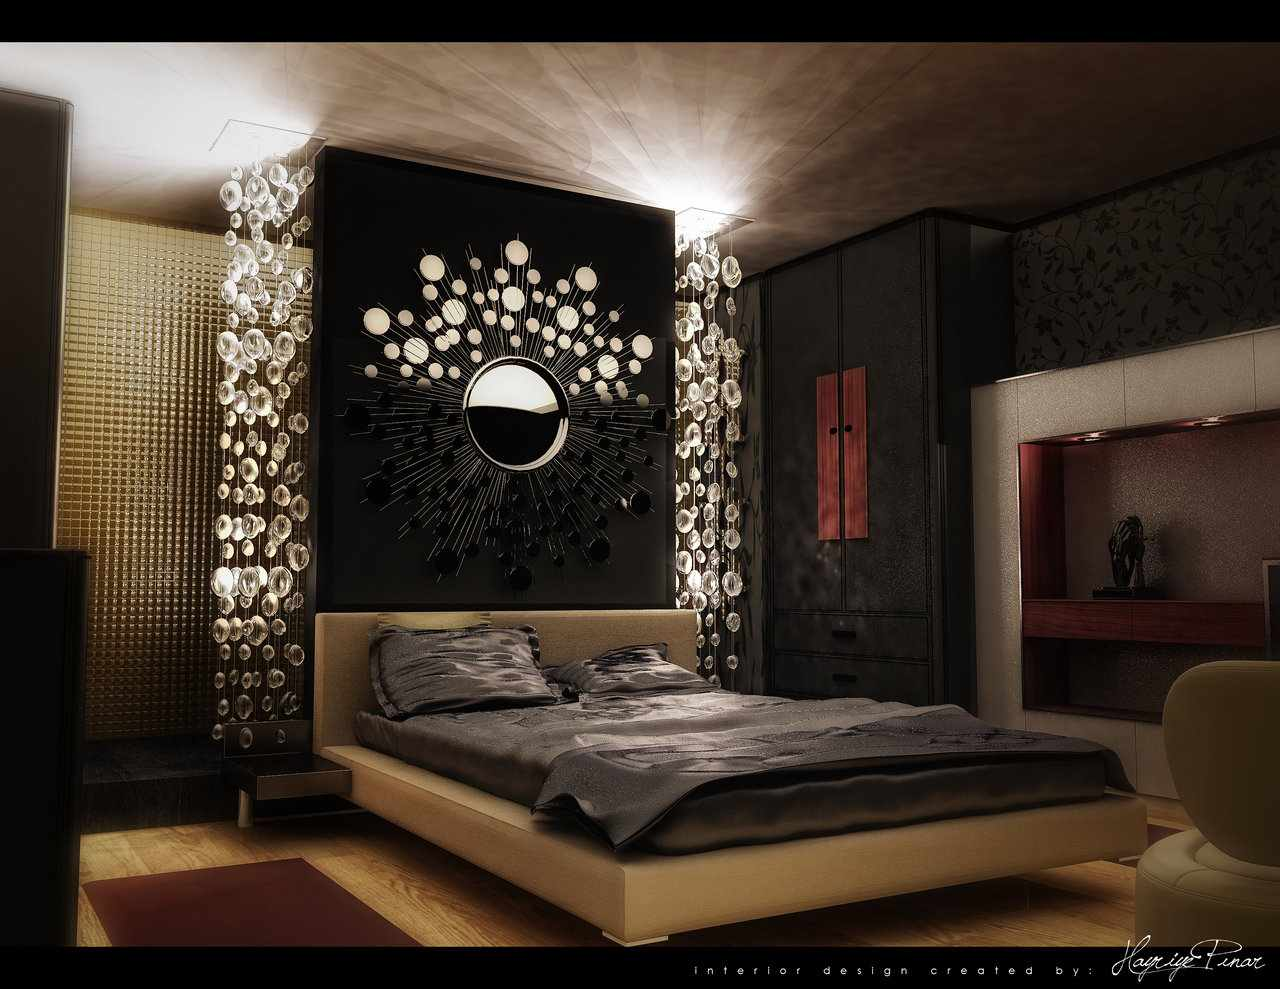 ikea bedroom ideas ikea bedroom 2014 ideas room design On bedroom accessories ideas